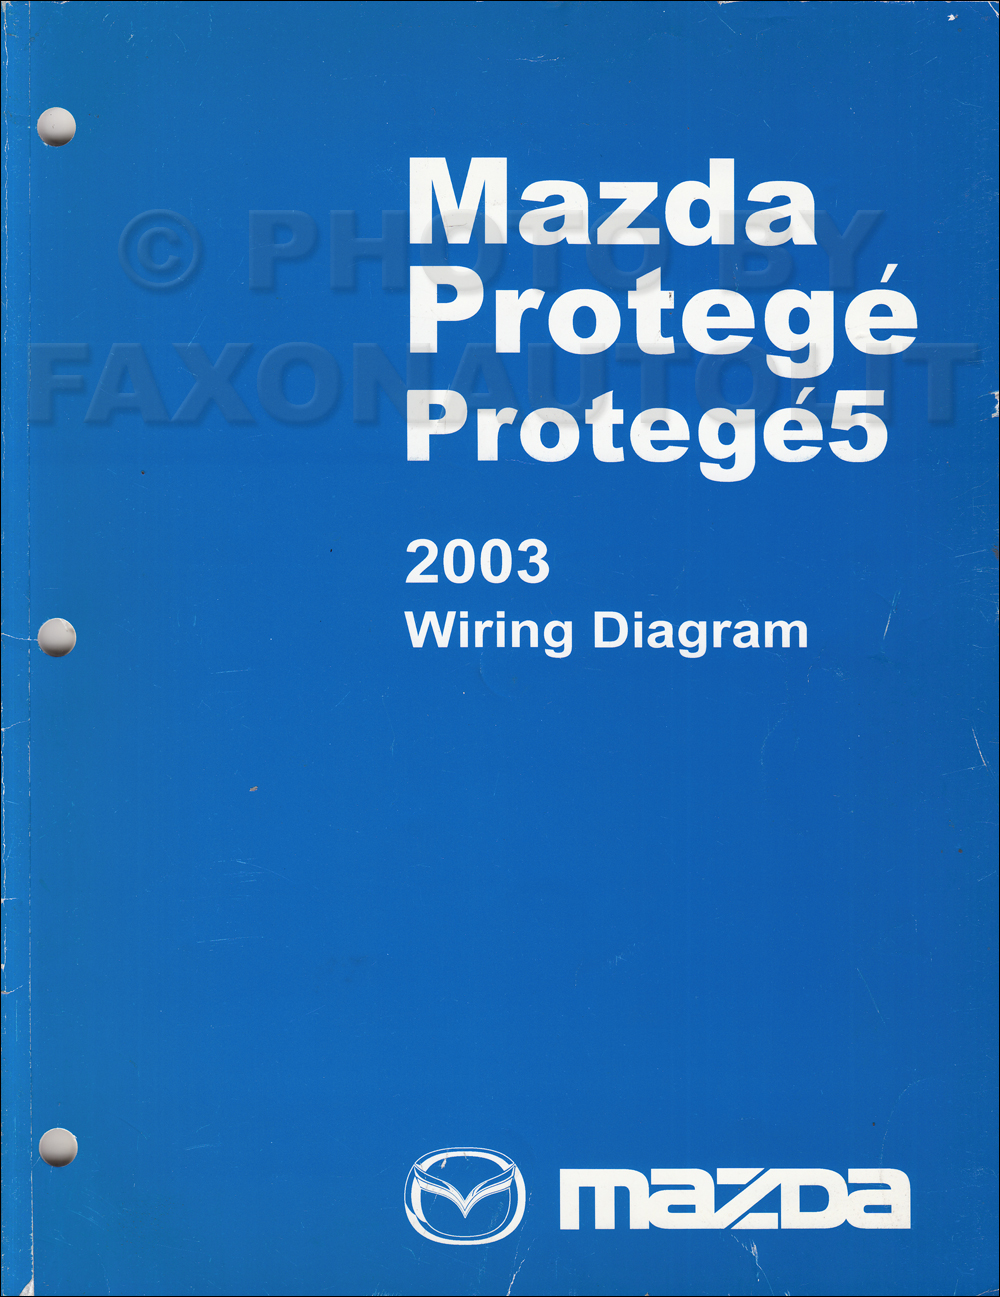 2003 mazda stereo wiring just another wiring diagram blog • 2003 mazda protege and protege5 wiring diagram manual original rh faxonautoliterature com 2003 mazda tribute radio wiring diagram 2003 mazda b3000 radio